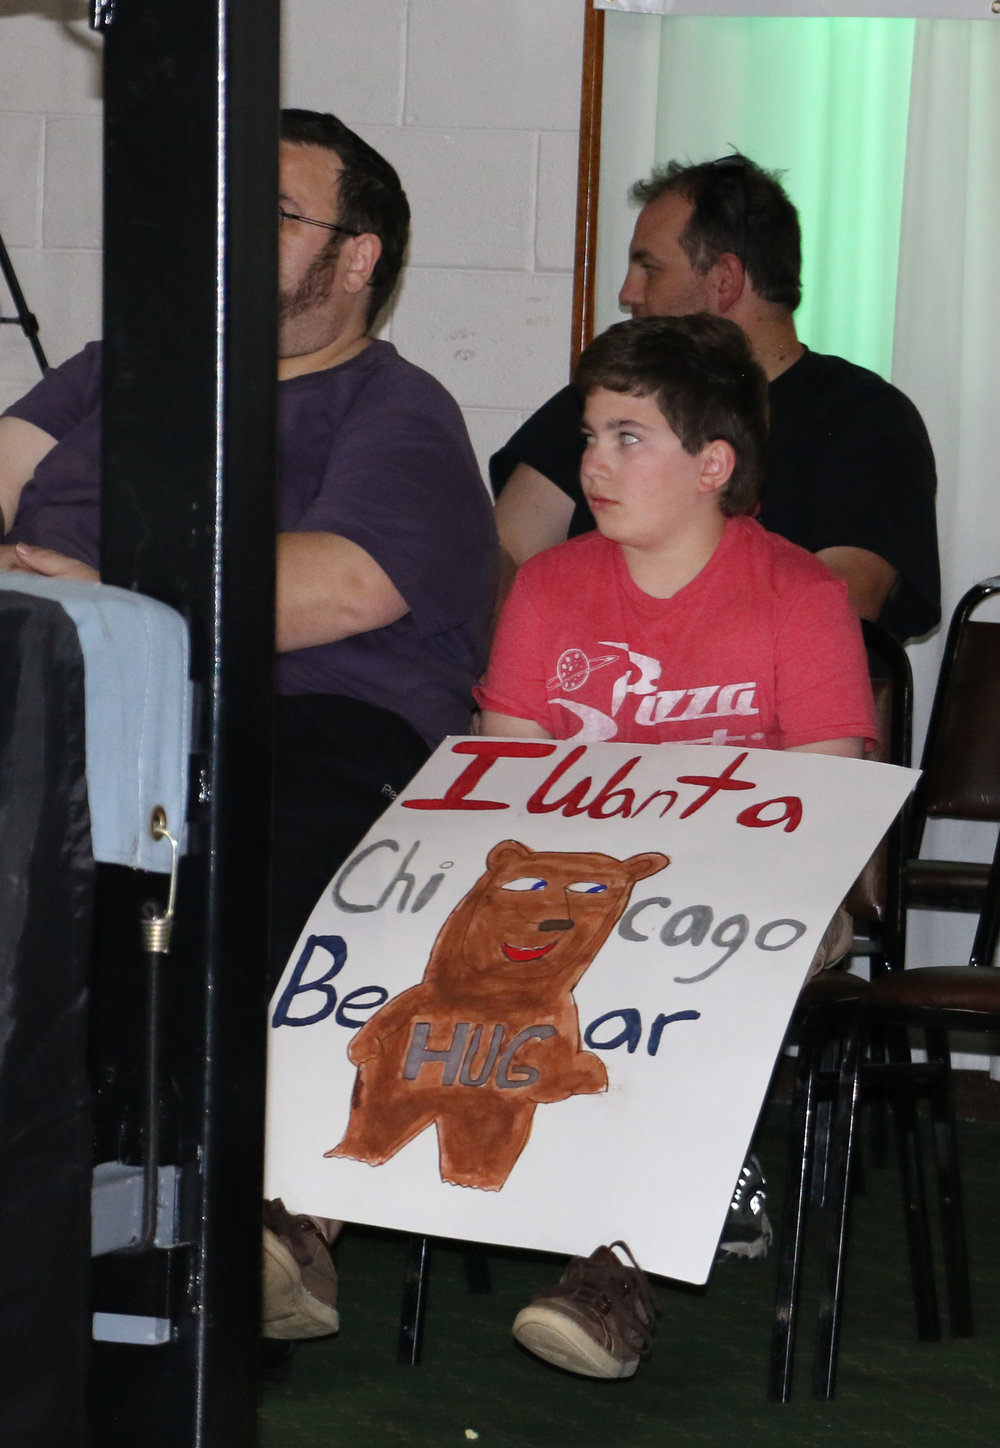 A young fan holds a Steve Michaels sign.